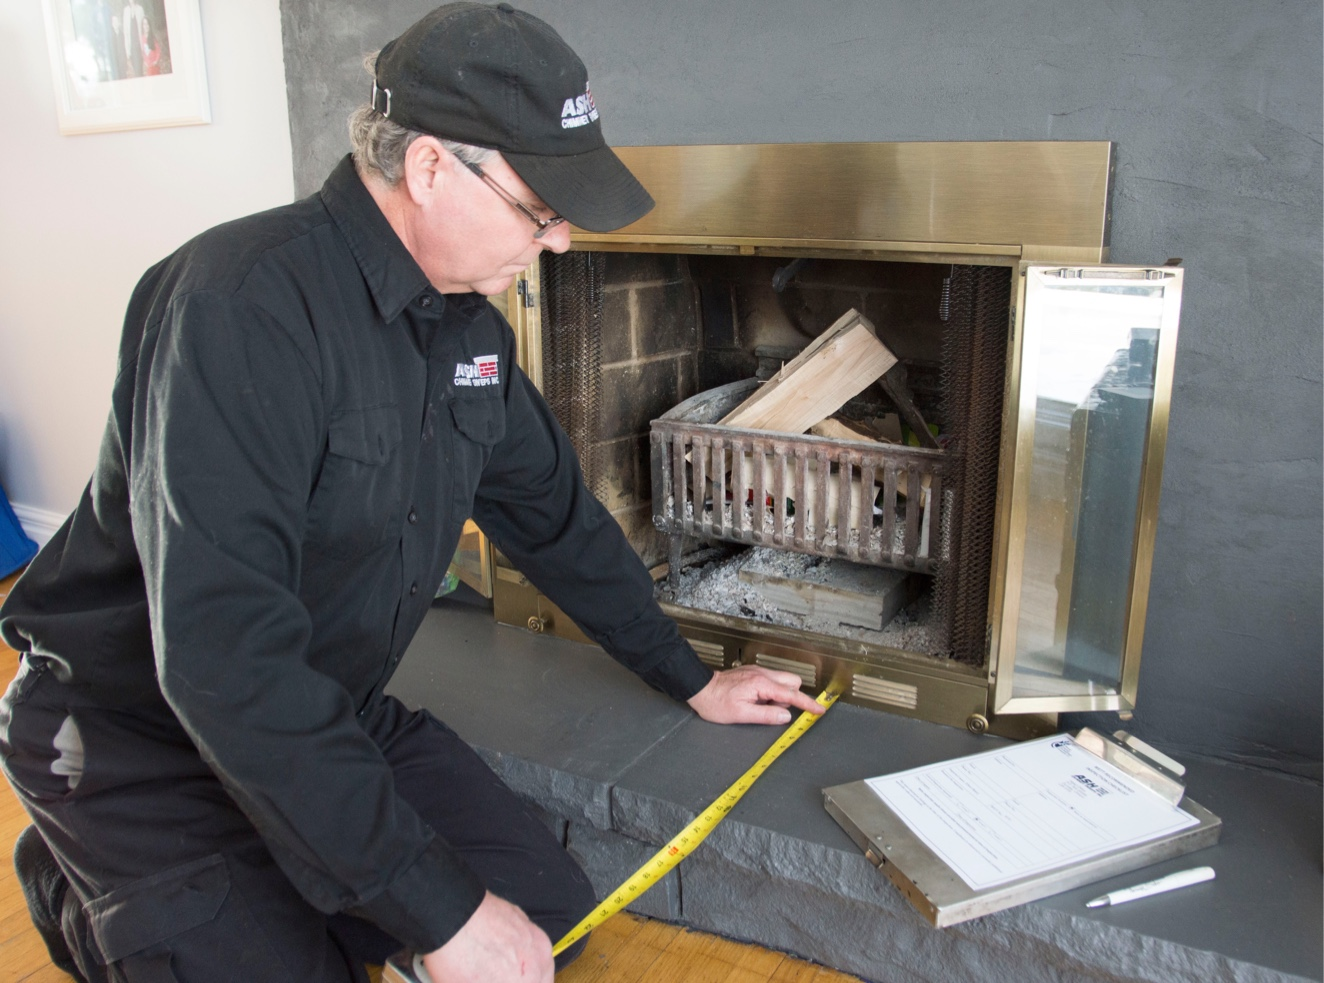 WETT Inspection of chimneys, fireplaces, wood stoves and wood inserts.